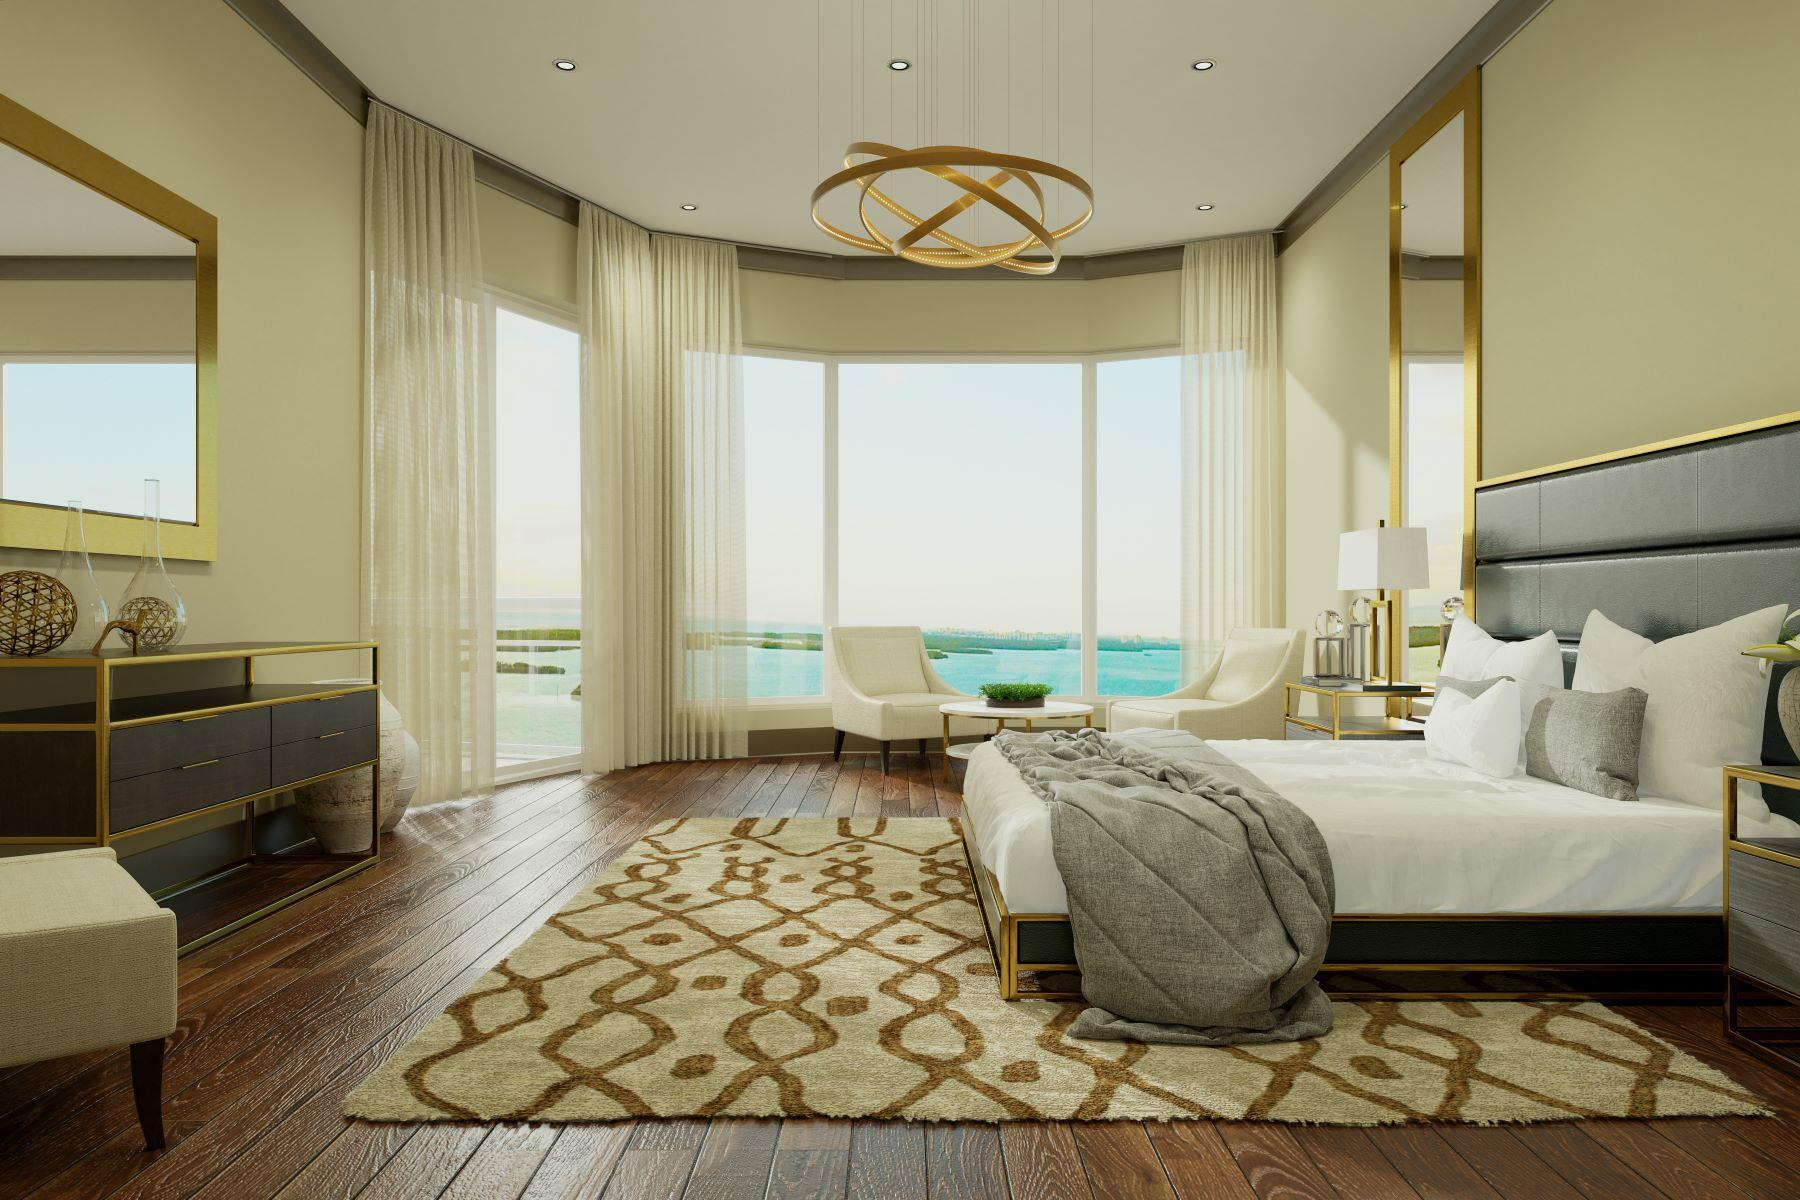 Bedroom featured in the Omega Residence 02 By The Ronto Group in Fort Myers, FL